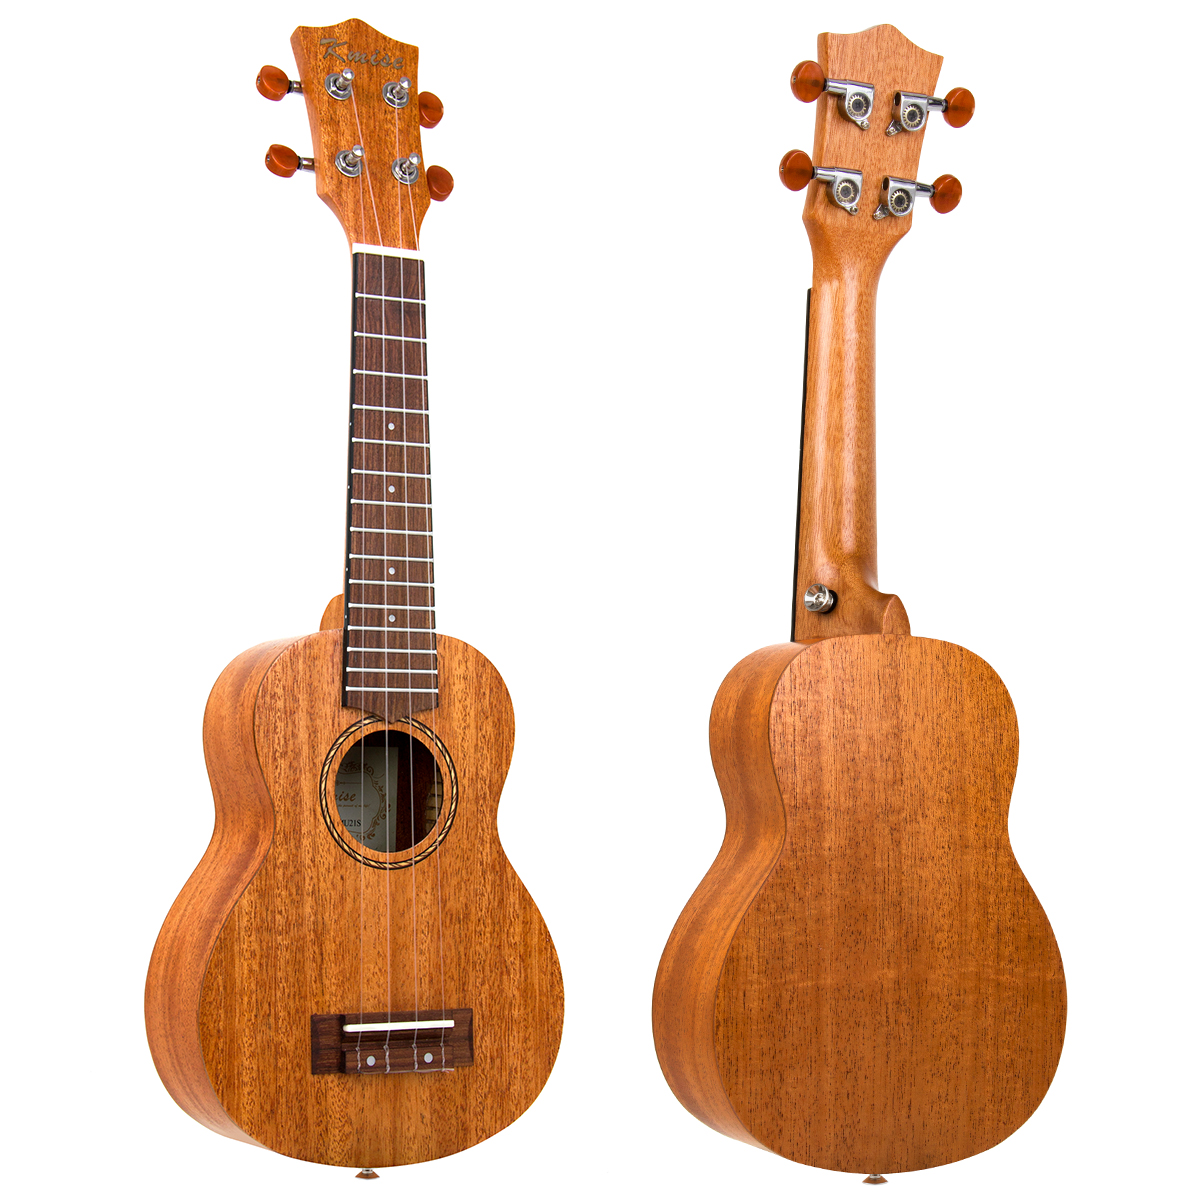 Kmsie Concert Ukulele Mahogany 23 inch 18:1 Advanced Tuner Carbon String G-C-E-A Bone Nut & Saddle 18 Frets with Strap Lock